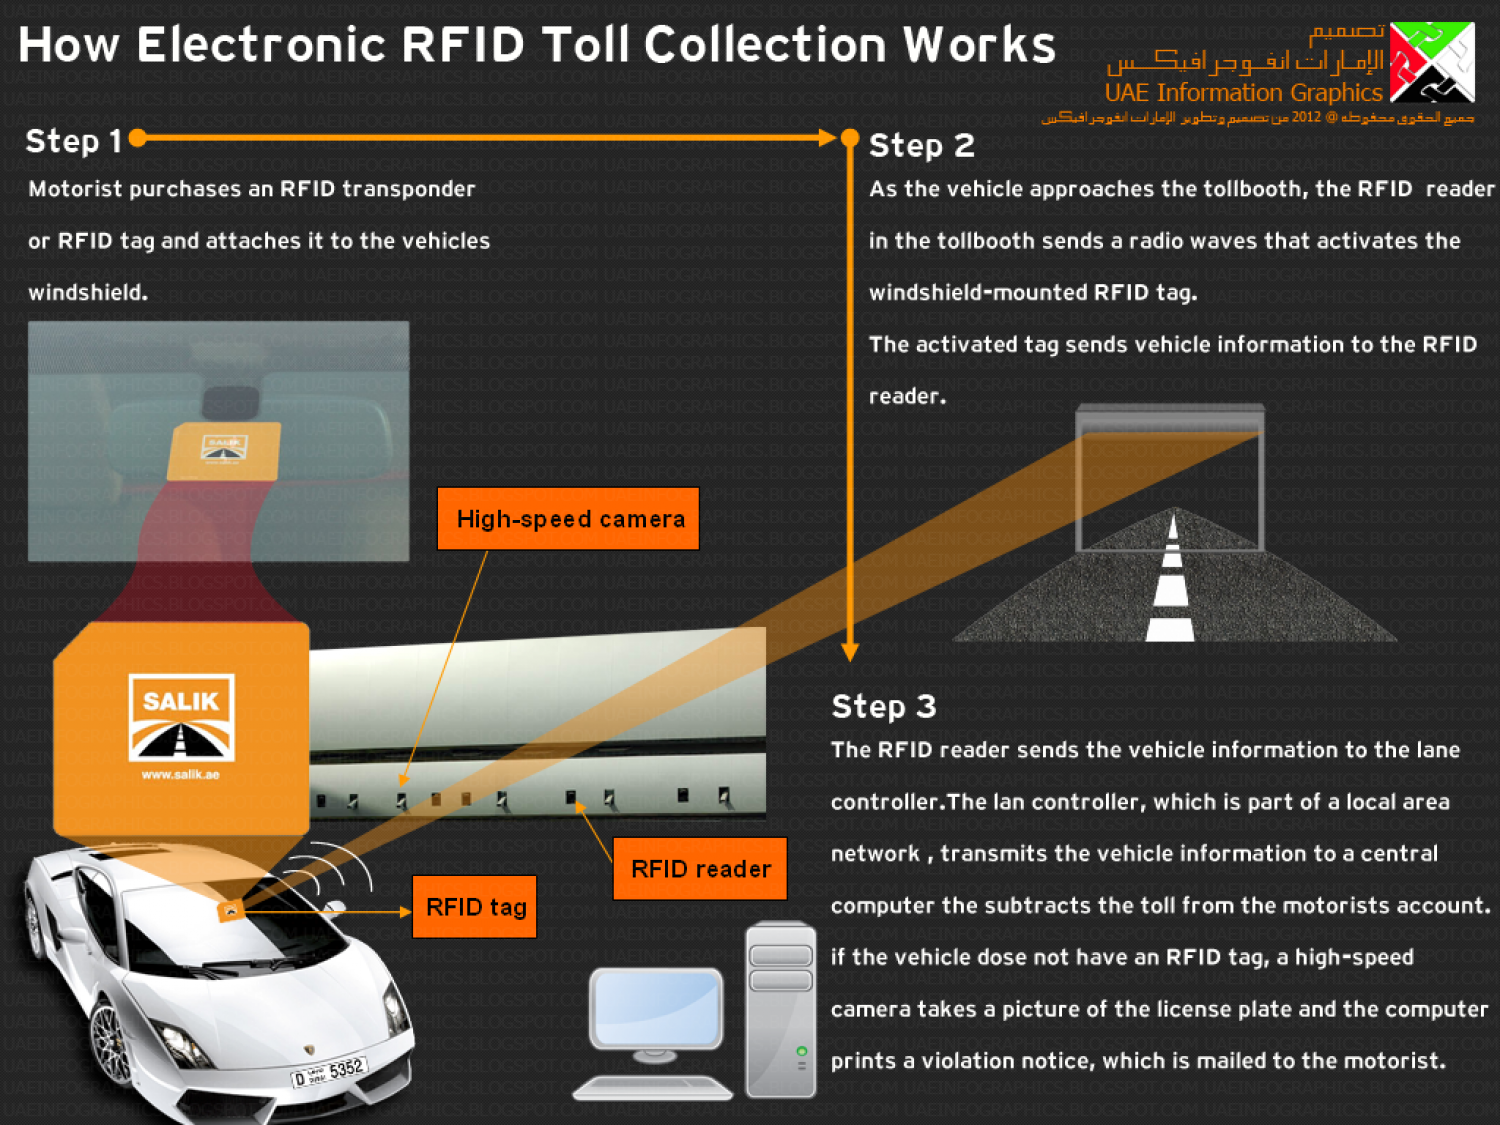 How Electronic RFID Toll Collection Works Infographic